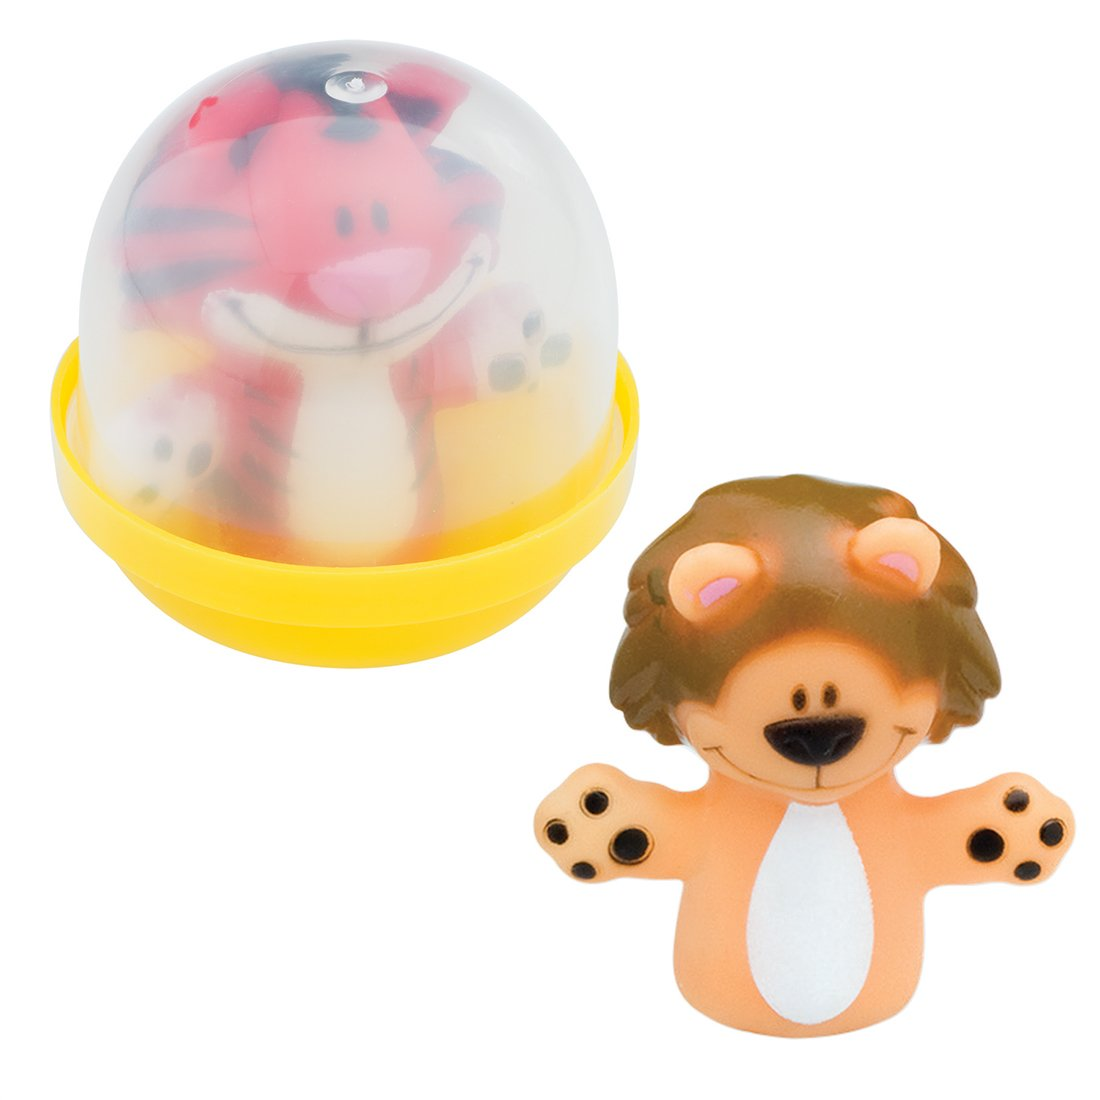 SmileMakers Animal Finger Puppets in 2'' Capsules - Capsule Toy Prizes 250 per Pack by SmileMakers (Image #1)